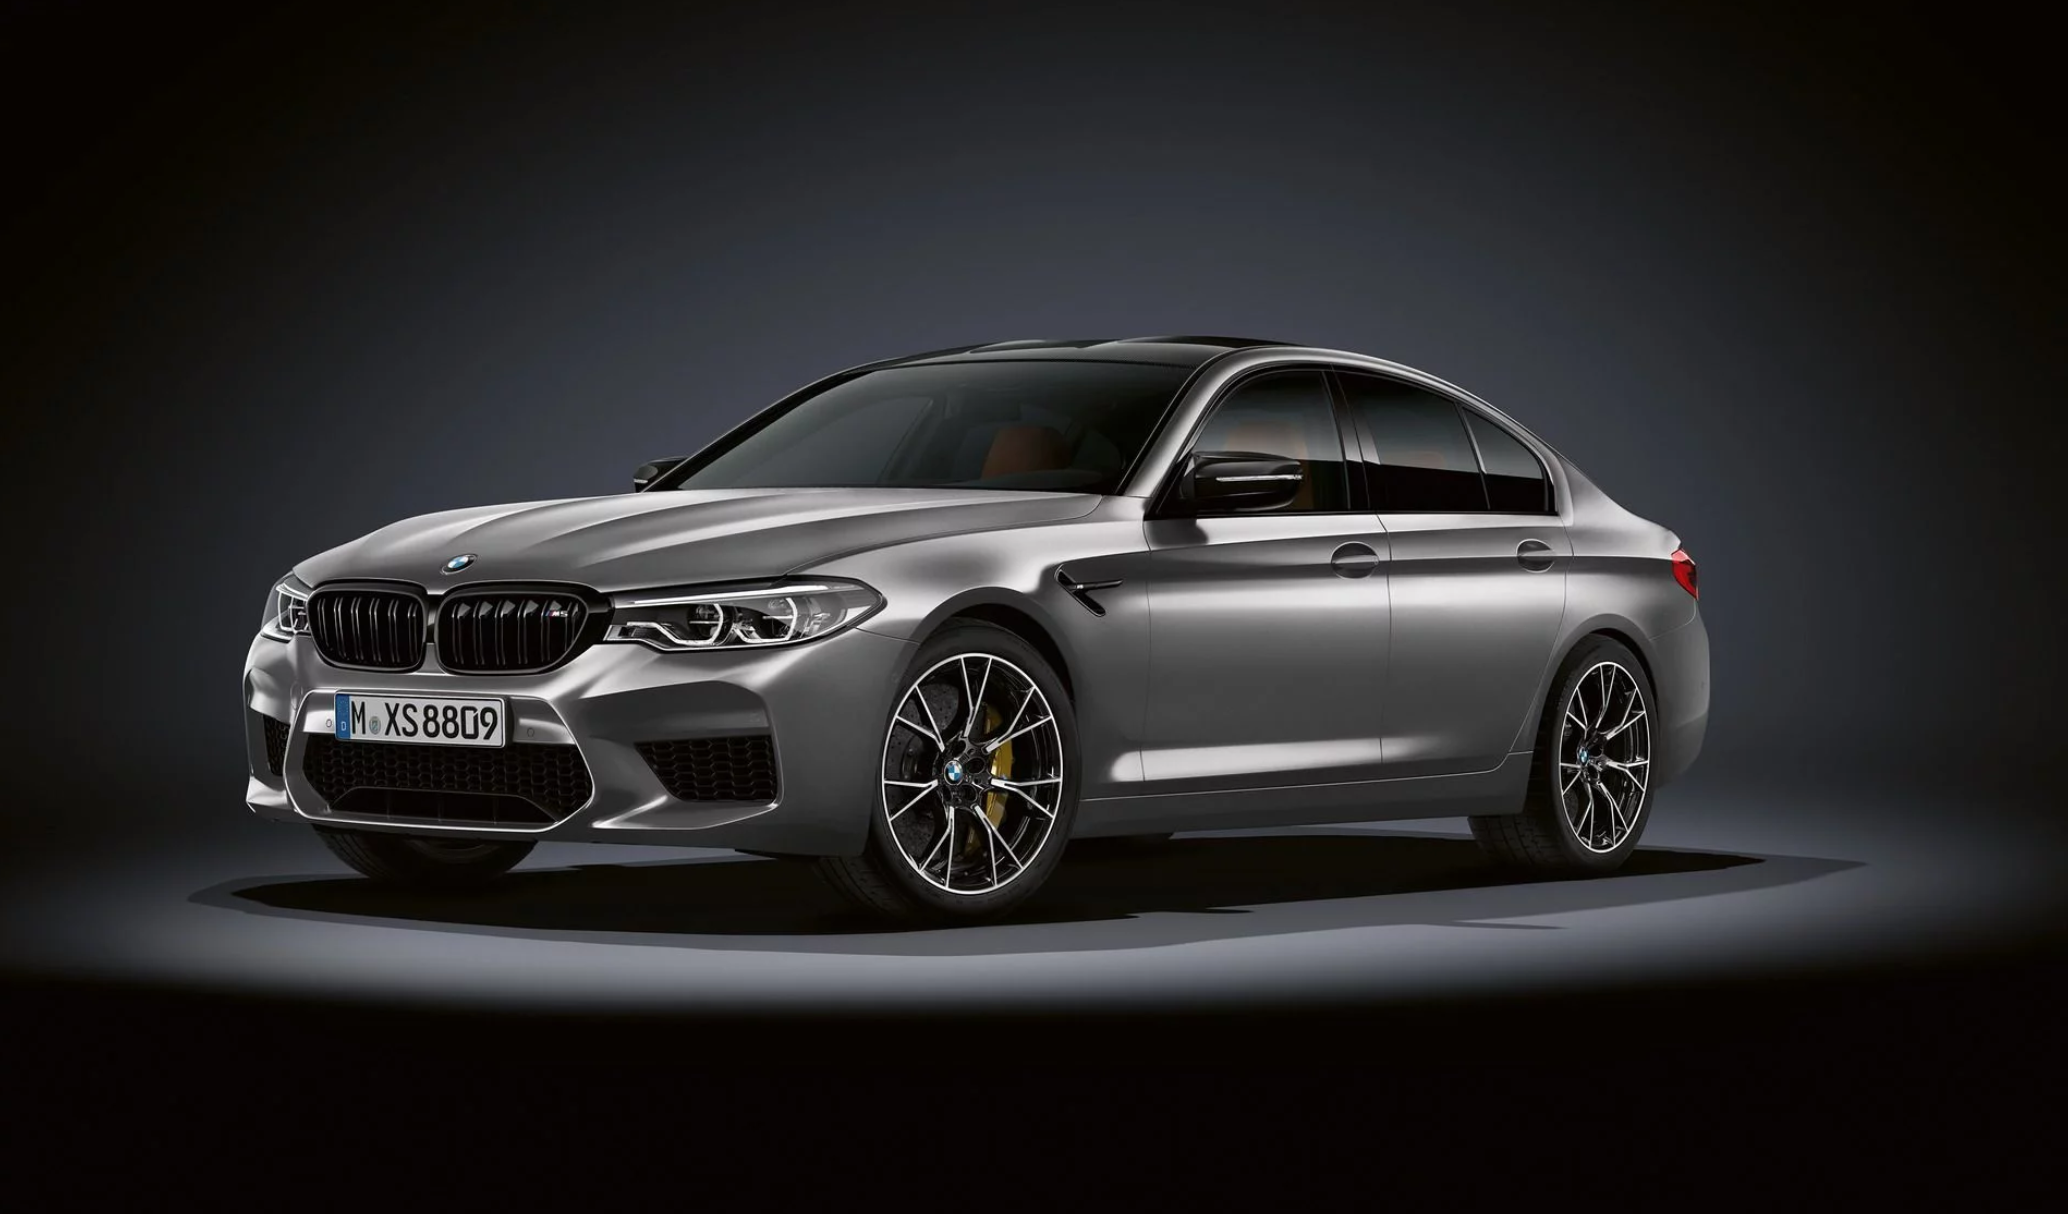 bmw-m5-competition-2019-017.png